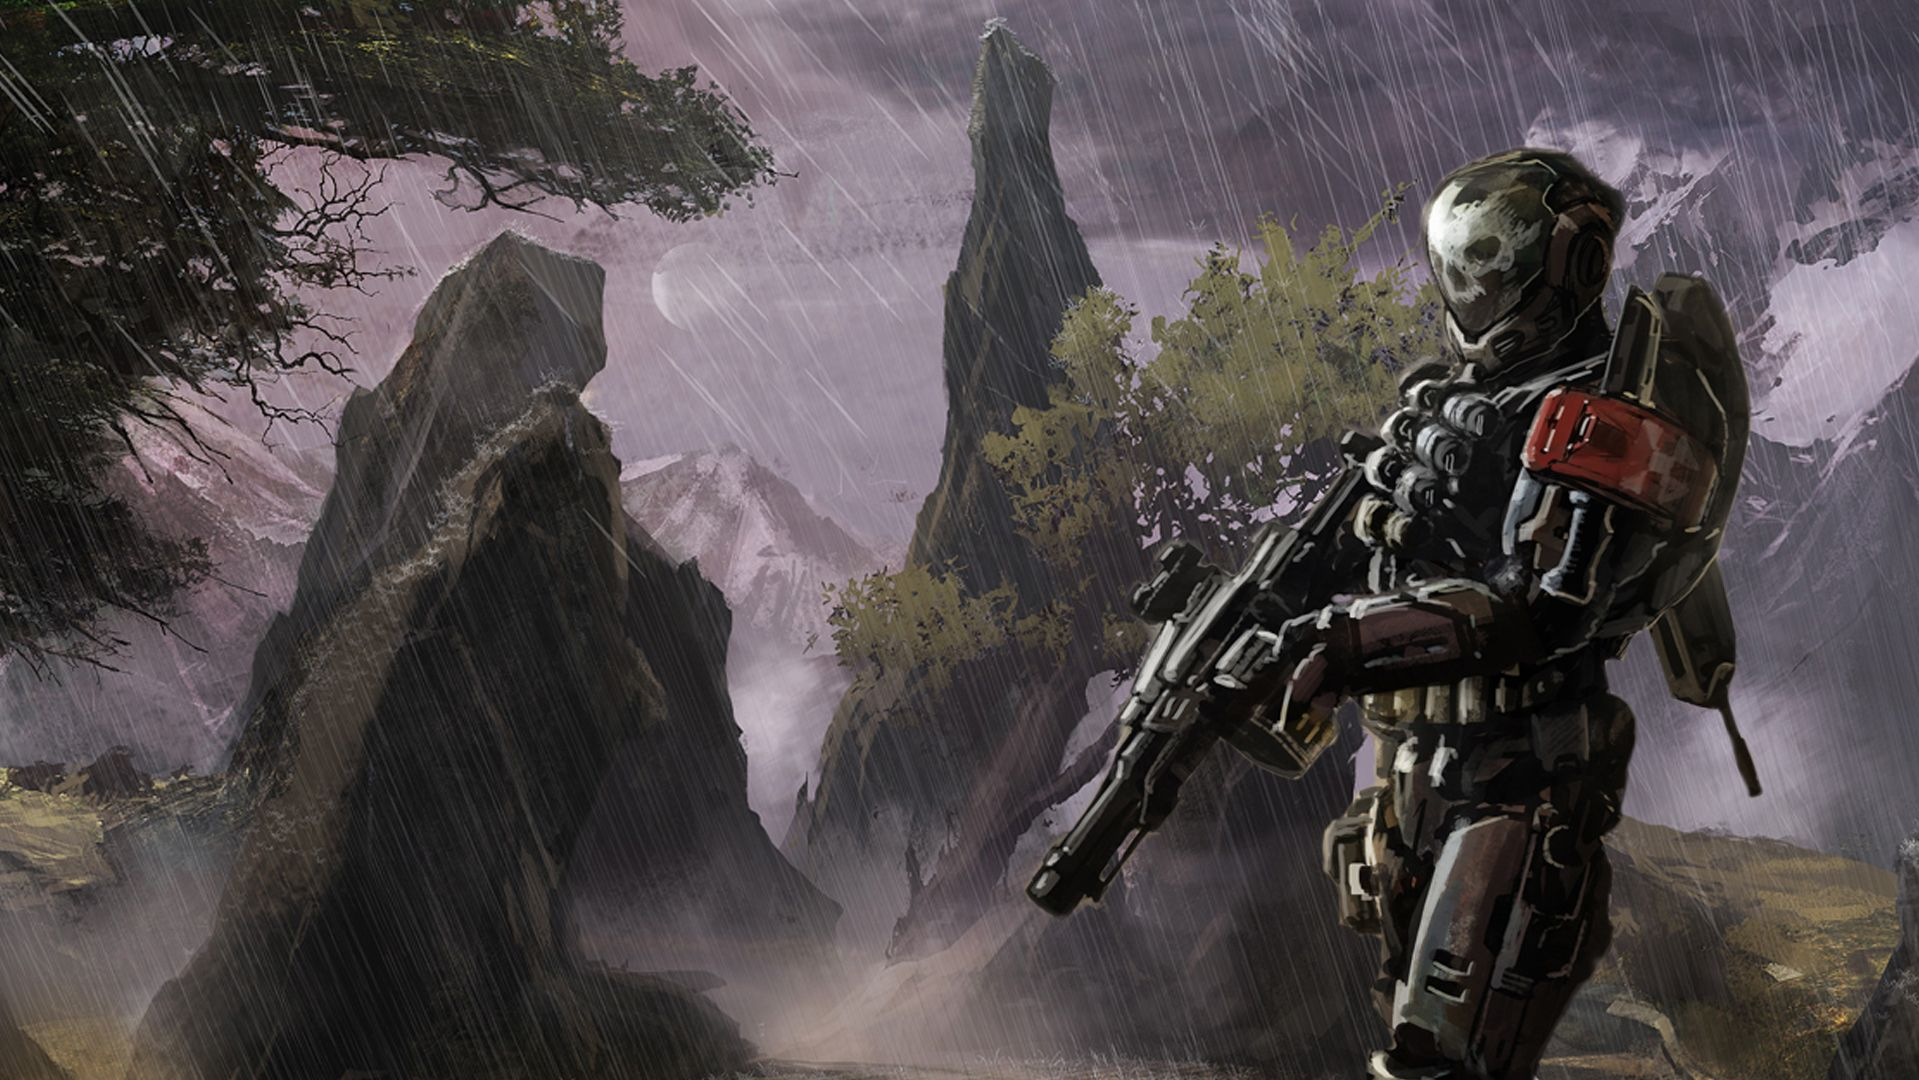 Halo Reach Wallpapers High Definition Halo Reach Halo Reach Wallpapers Halo